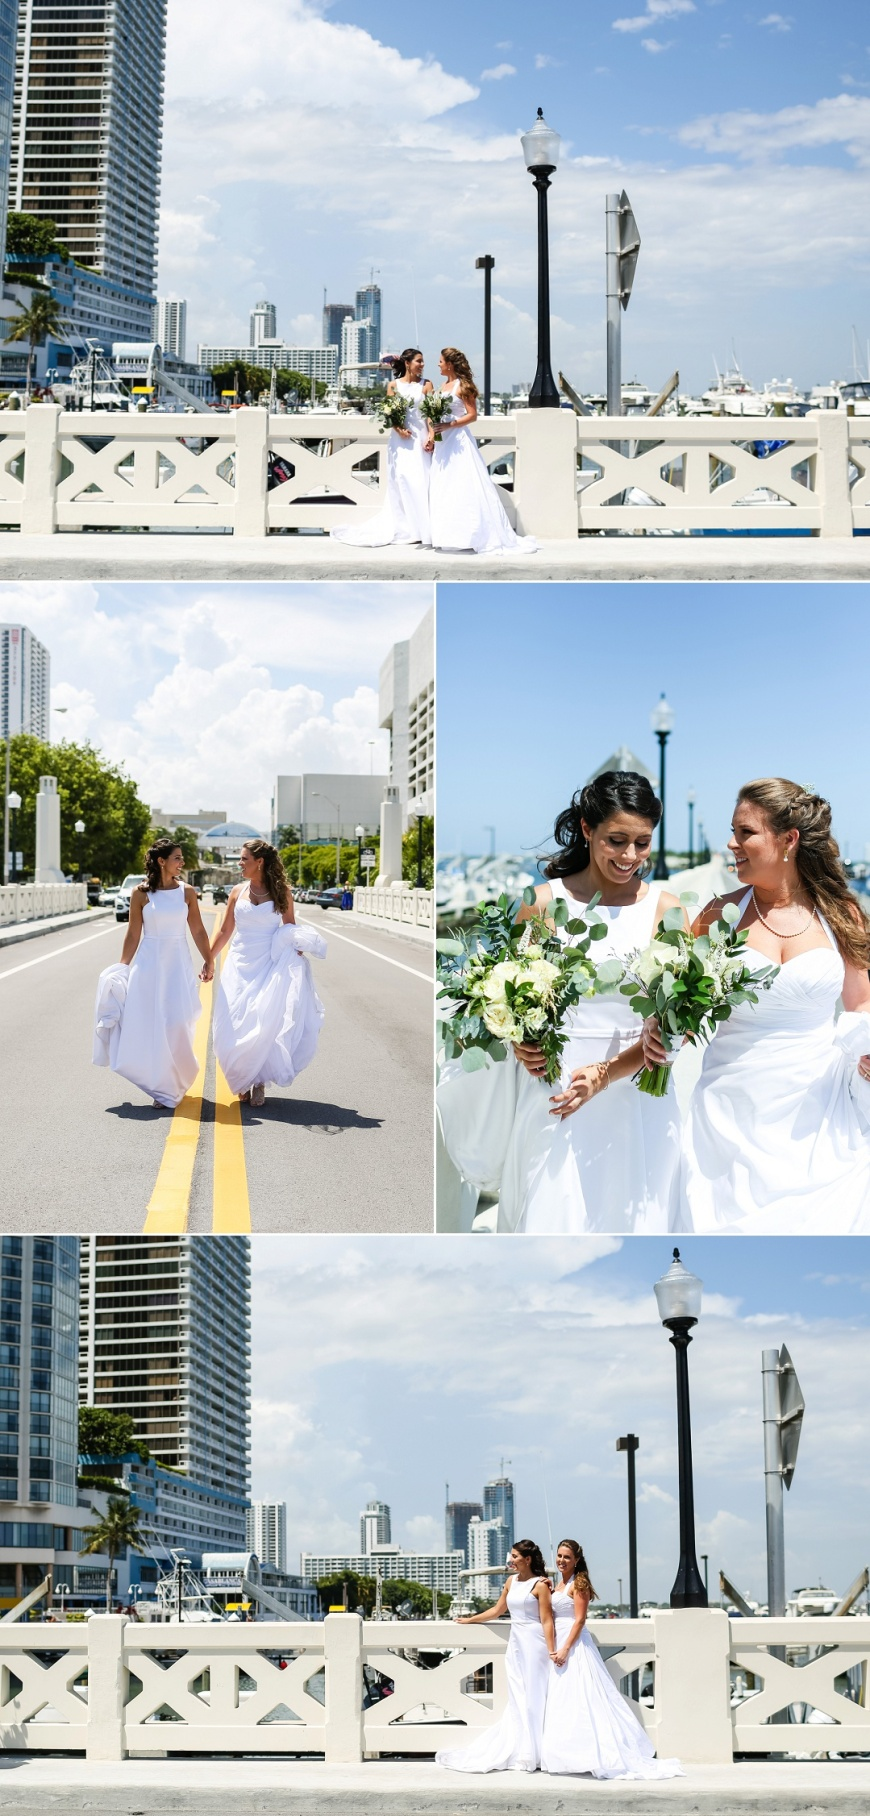 Royal-Palm-Island-Miami-Wedding-Photographer_1033.jpg